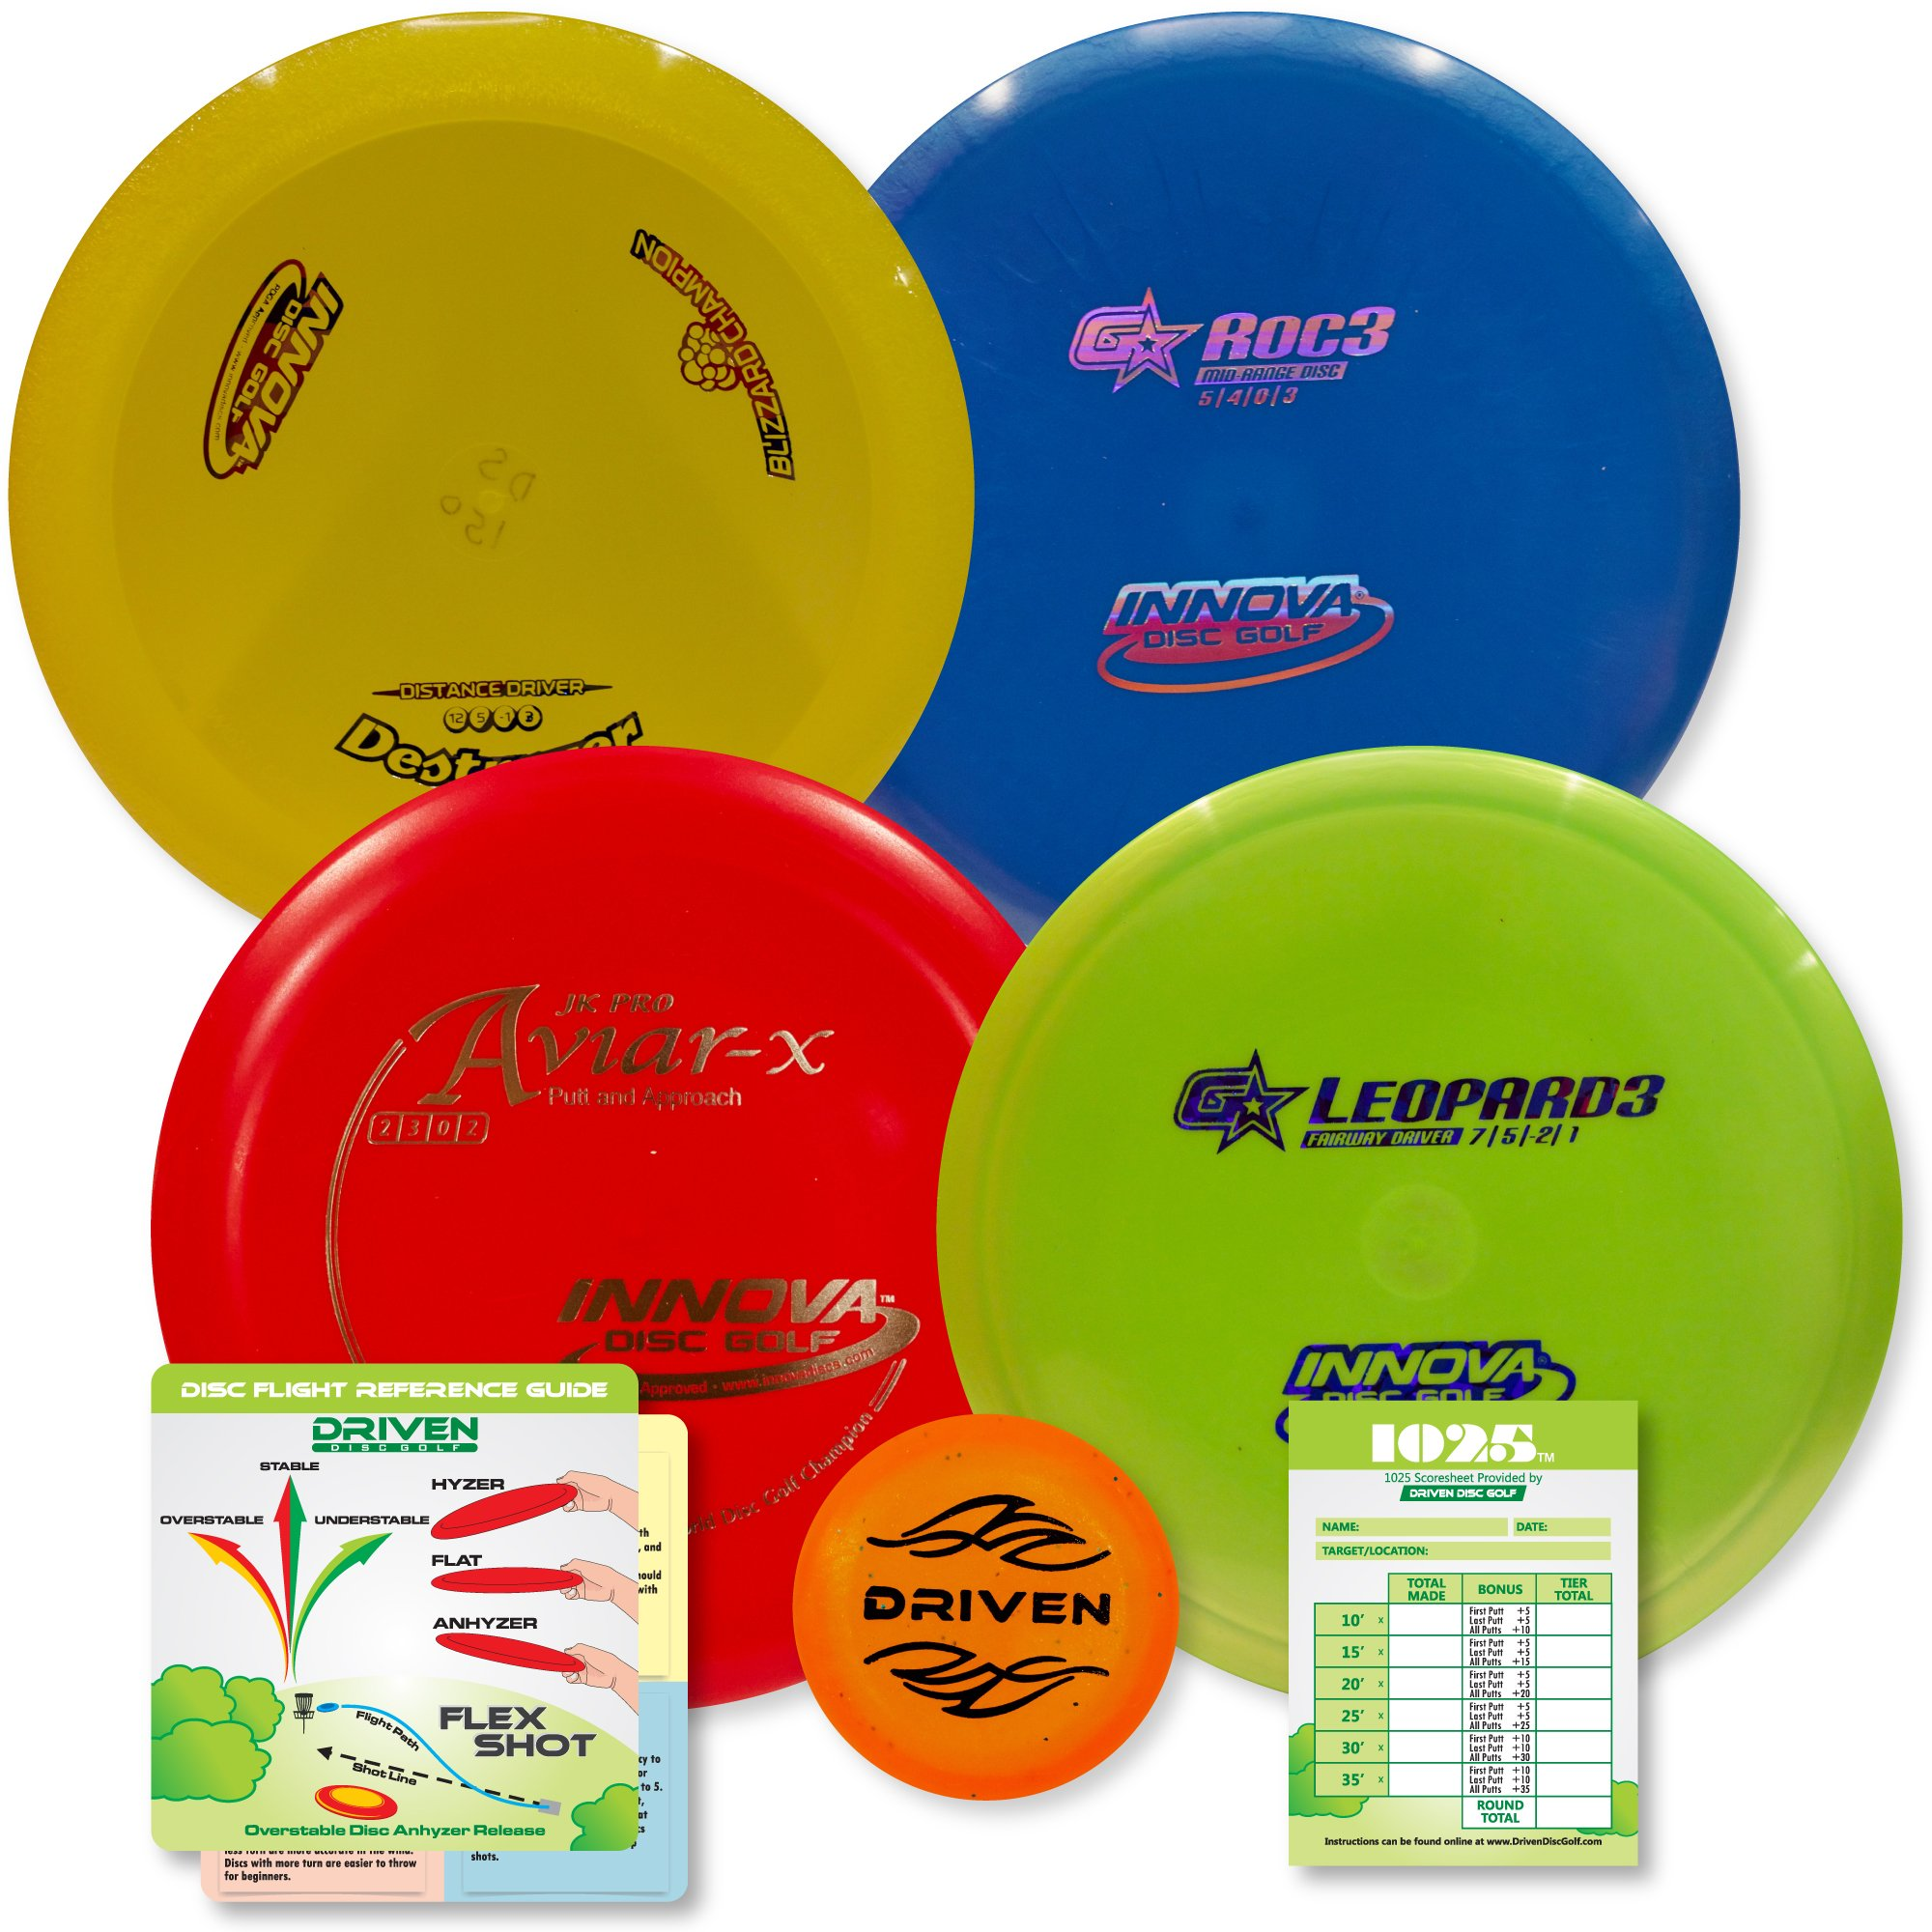 Innova Disc Golf Advanced Players Pack | Premium 4 Disc Set - for Intermediate and Experienced Players - 1025 Putting Game - Flight Reference Card - Driven Mini Marker | Disc Colors Vary by Driven Disc Golf (Image #1)